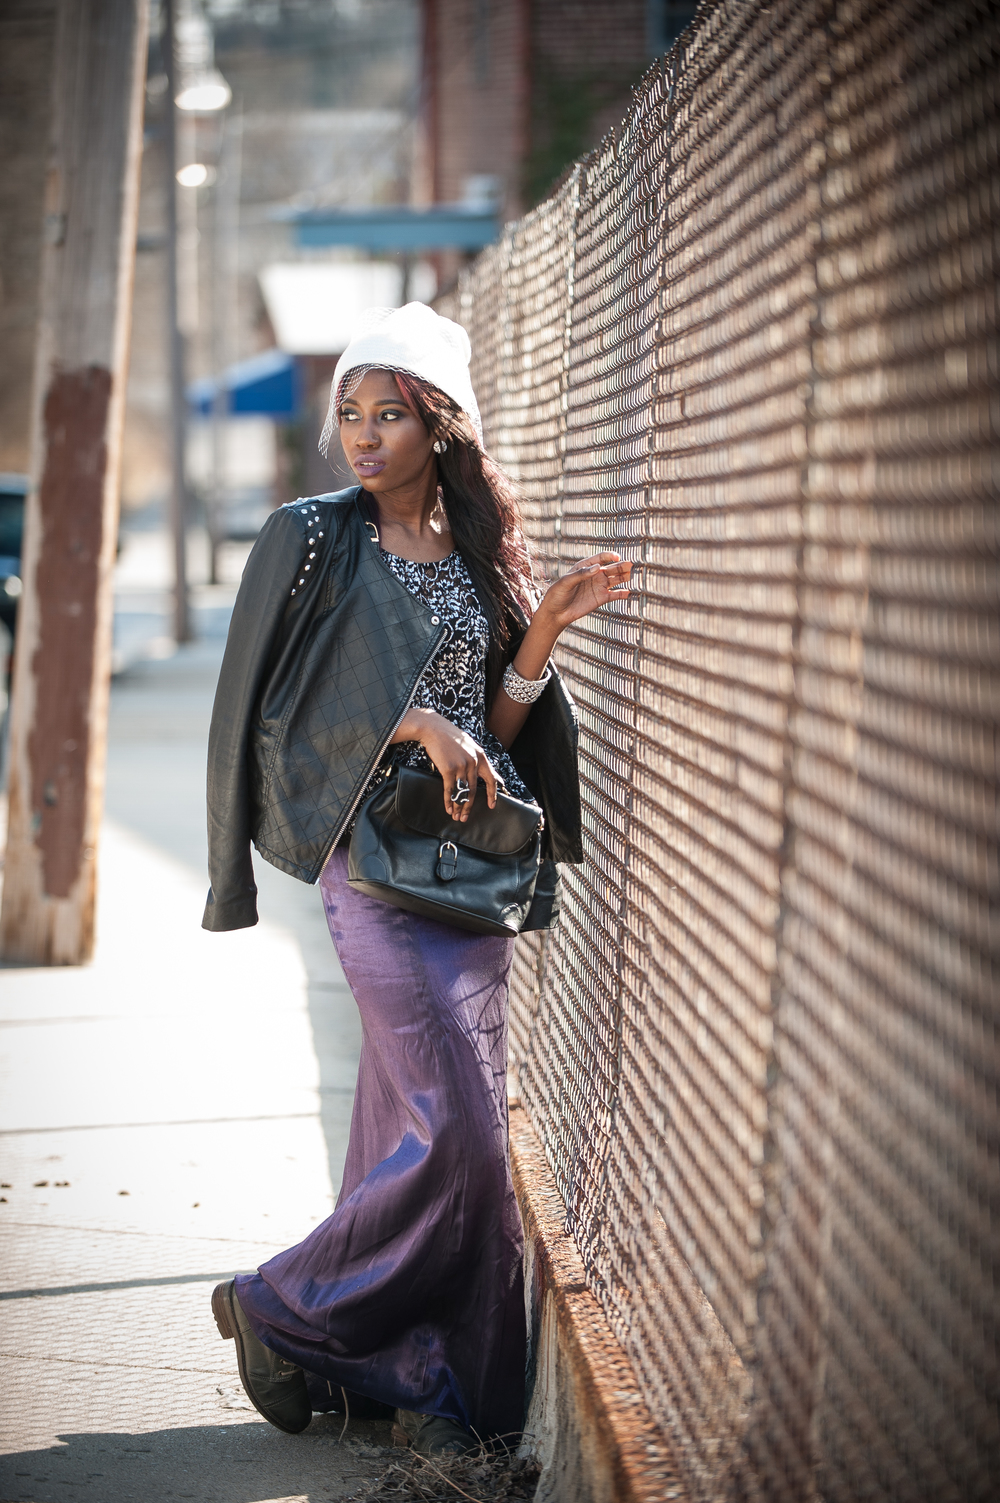 Back to Reality... The teen throws on grunge glam attire and heads back to the back alleys and abandoned buildings where her anti-social life takes place. Look 4: shimmer lace top, leather jacket with soft studs,violet ball skirt, combat boots, vintage leather bag andglitzy accessories.